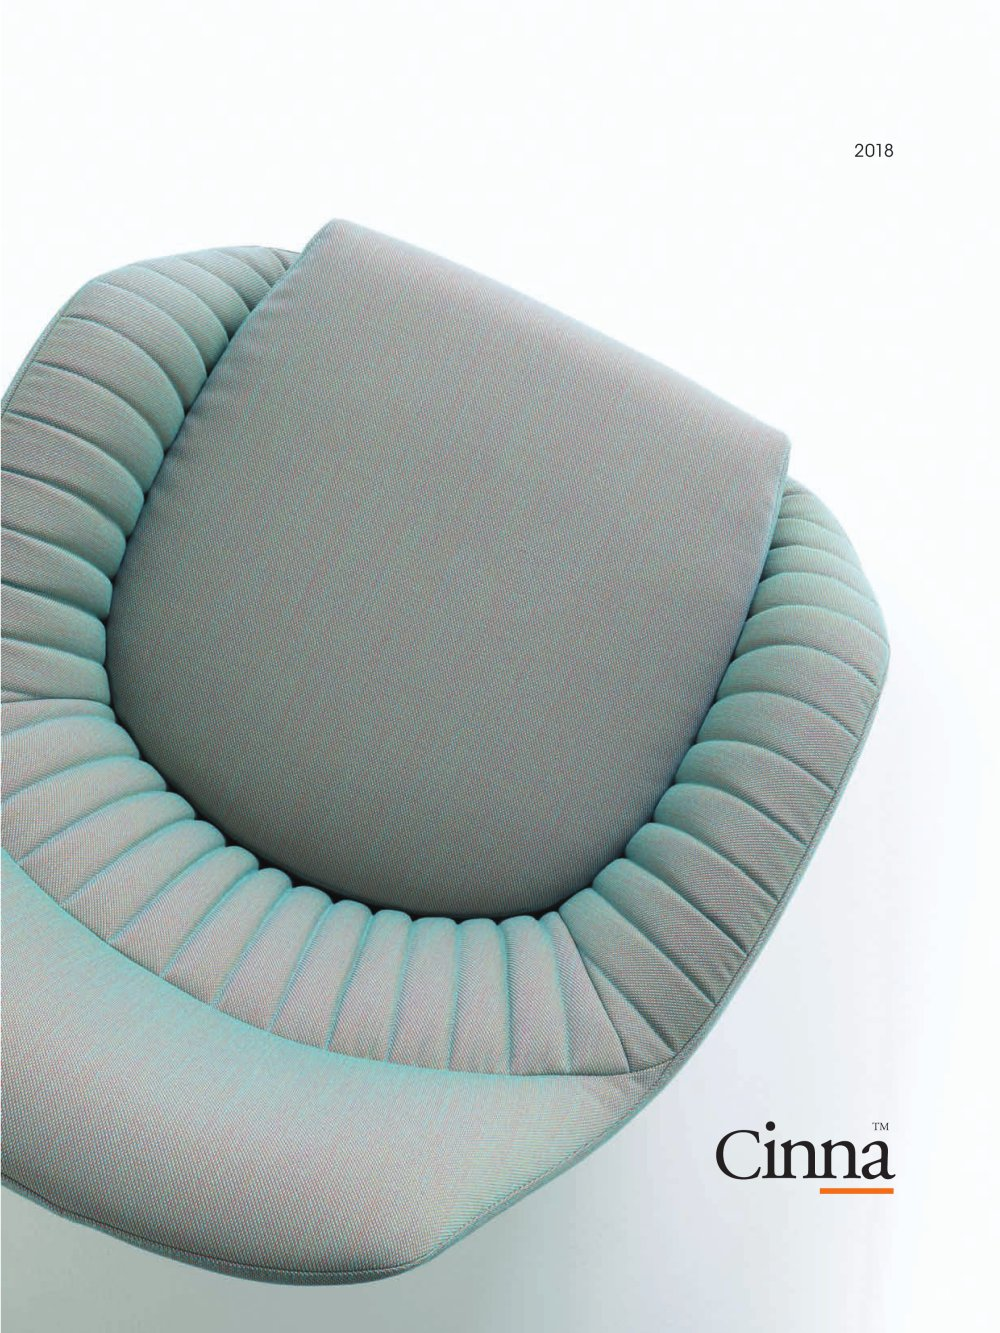 Meubles Cinna Prix Cinna 2018 Catalogue Cinna Catalogue Pdf Documentation